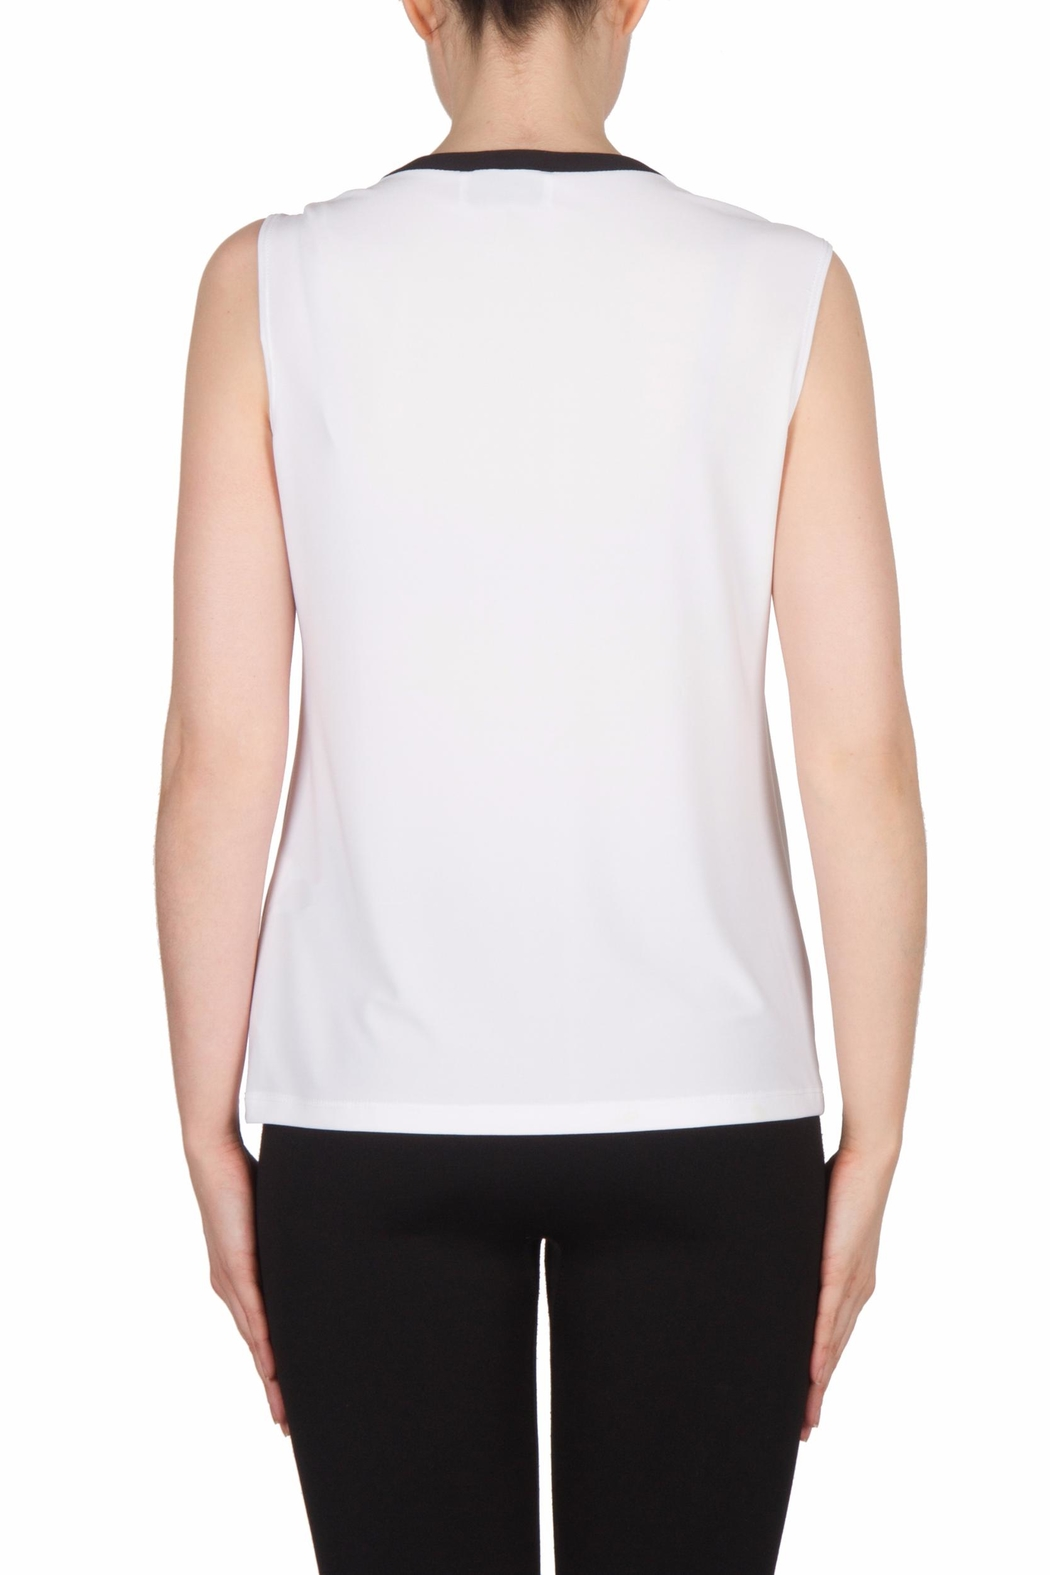 Joseph Ribkoff Leatherette Trimmed Top - Side Cropped Image